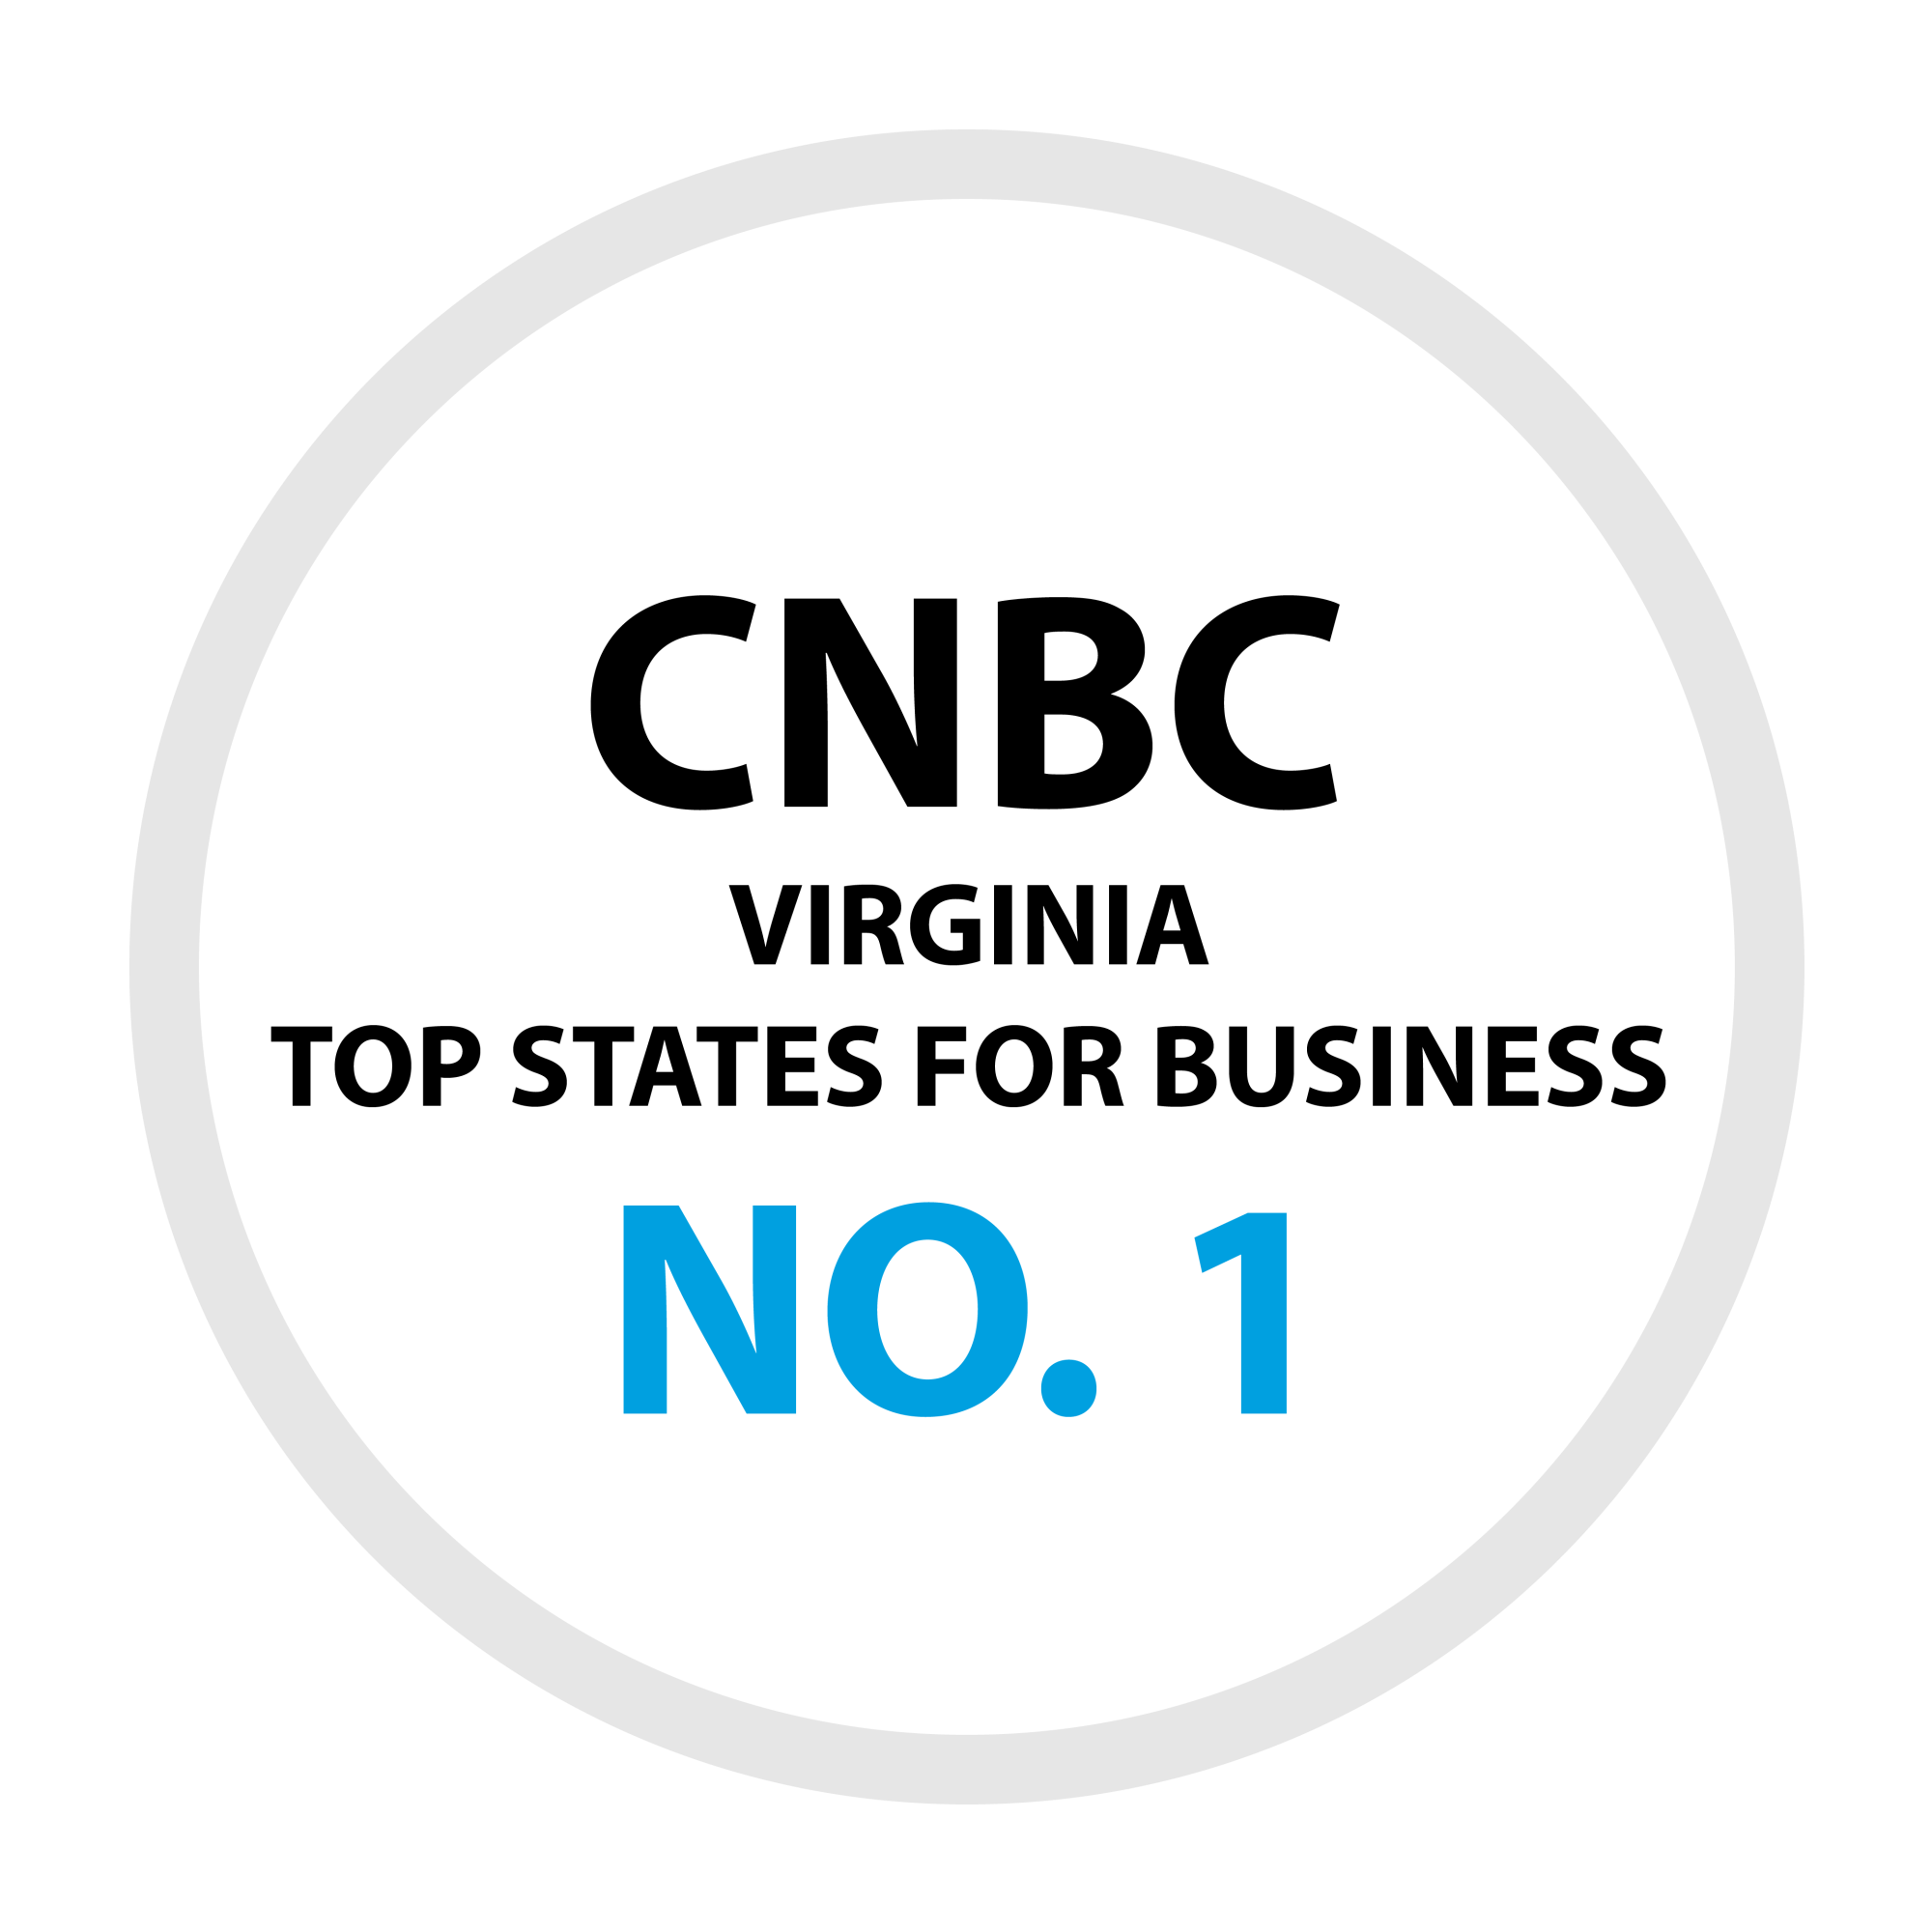 Accolades_CNBCTopStatesForBusiness